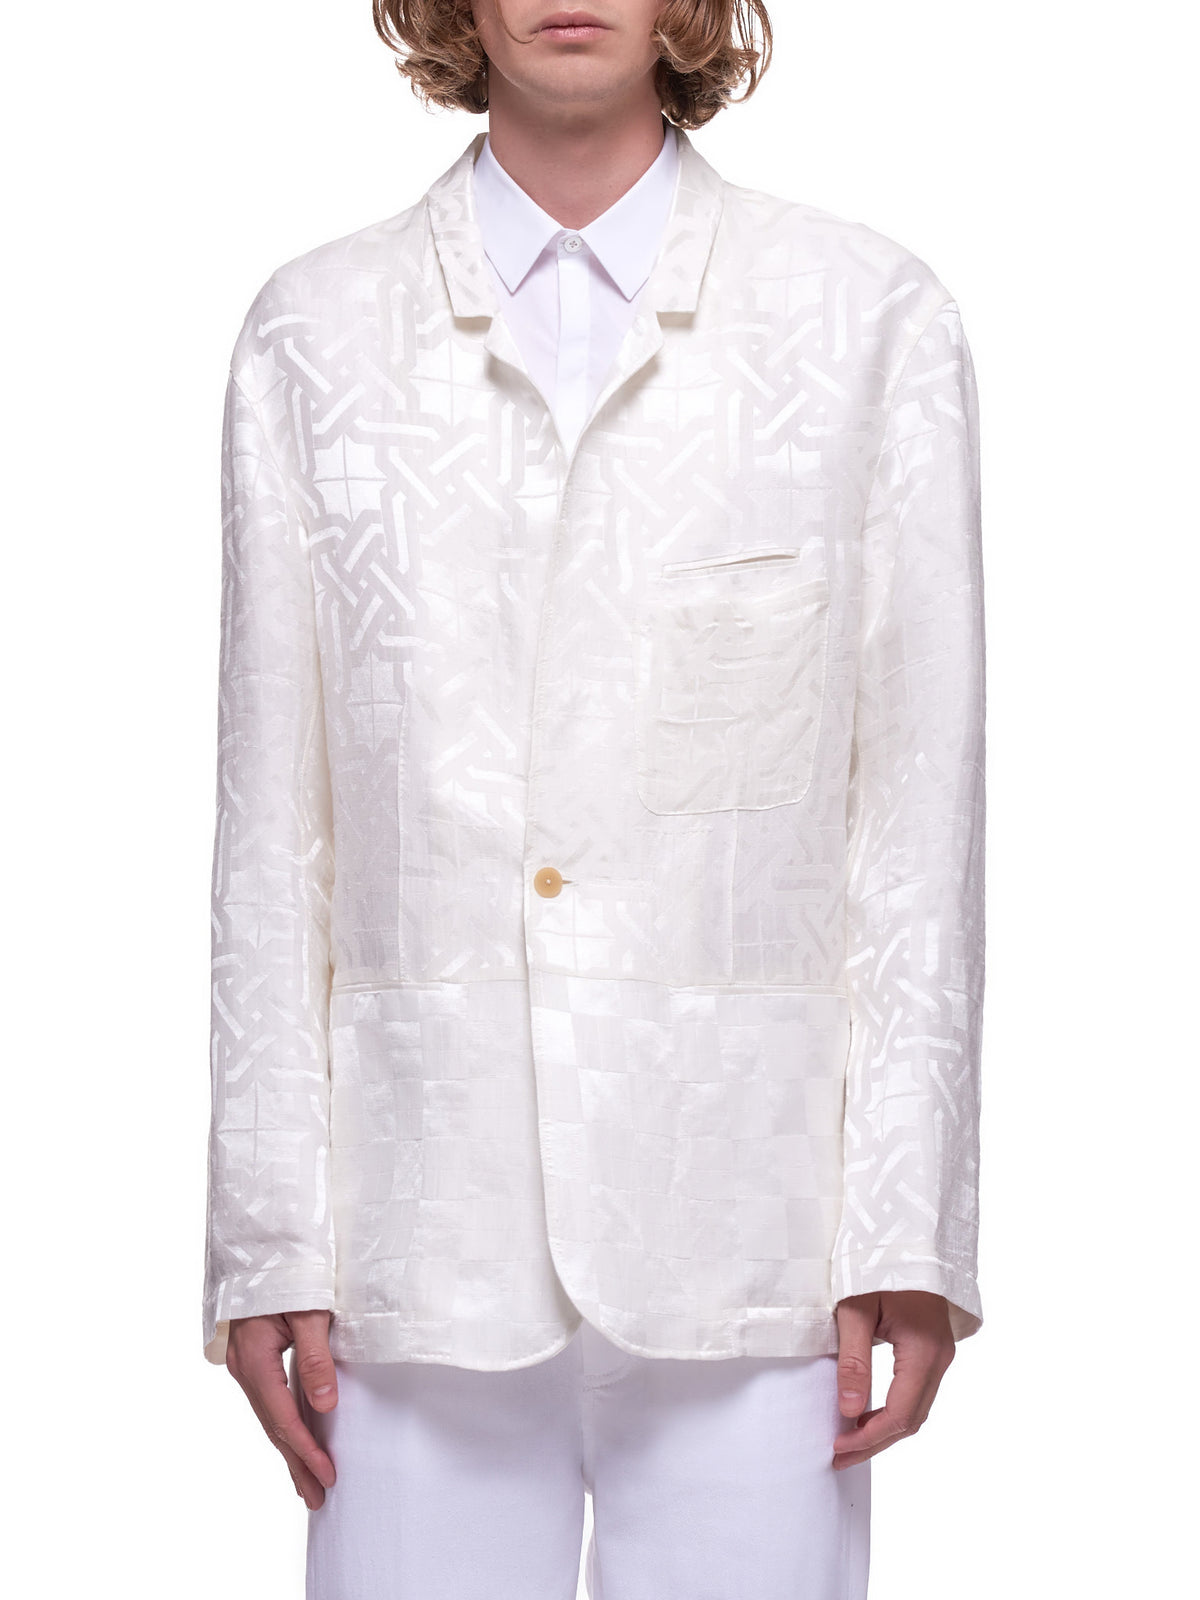 Shirt Jacket (203-3612-134-001-WHITE)